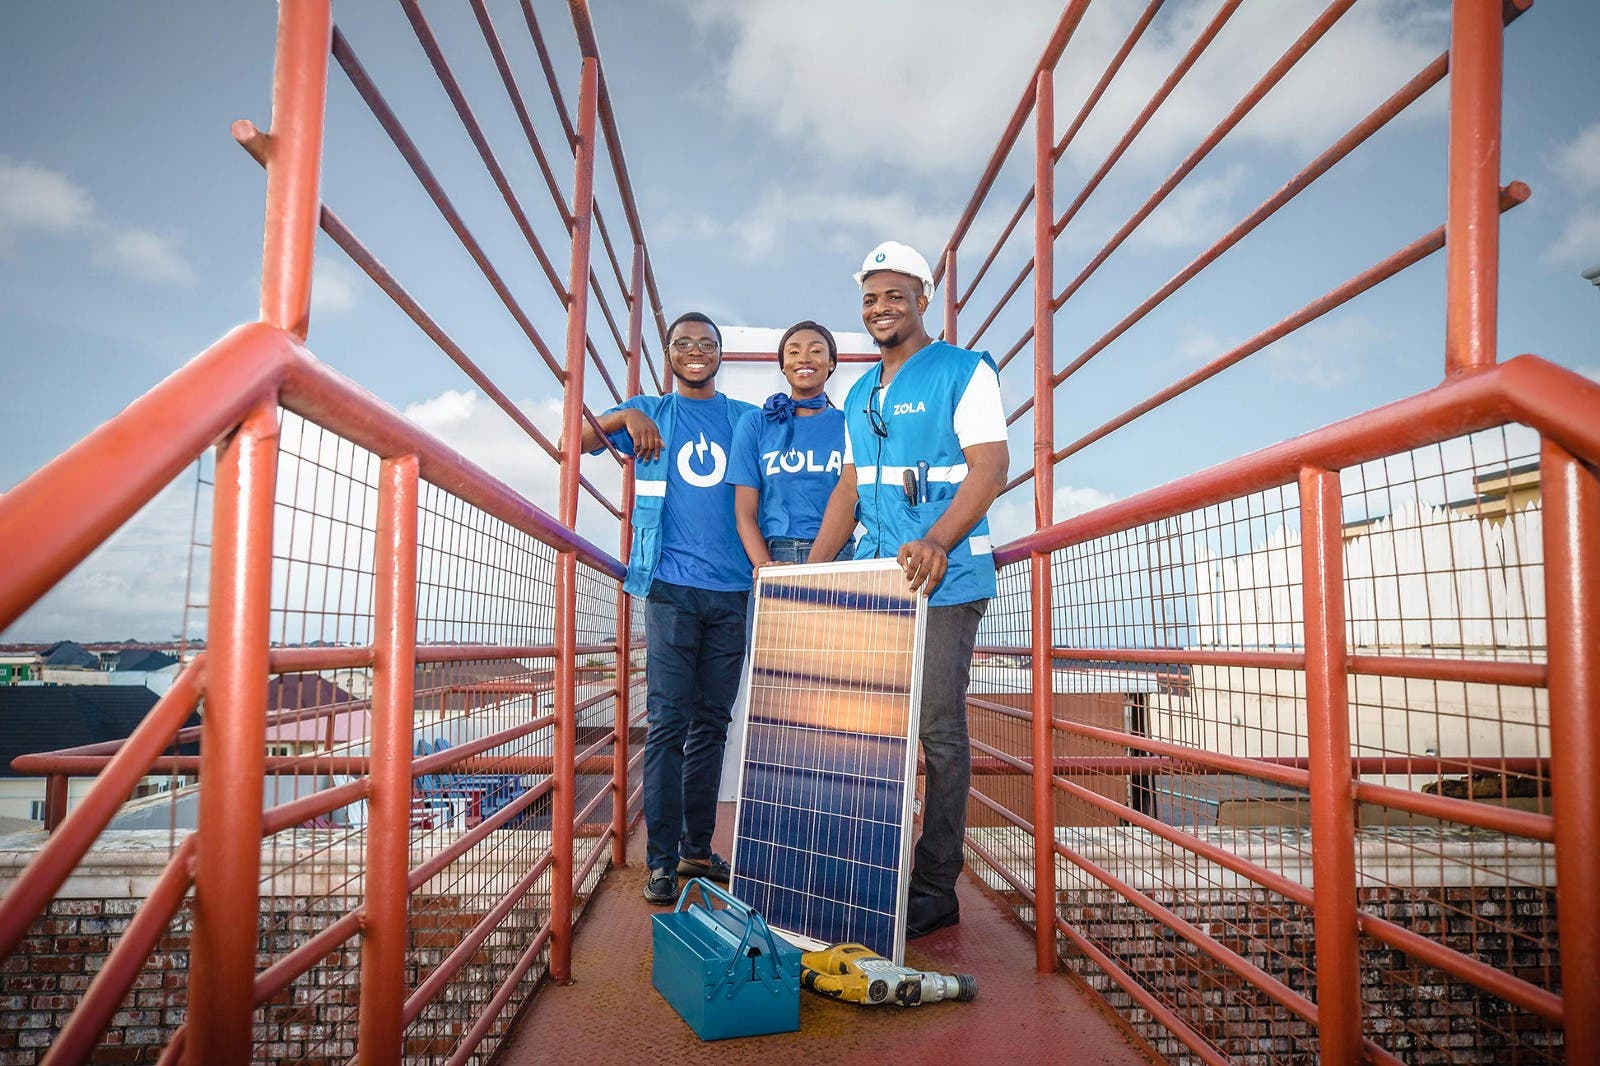 SolarCity Founders Peter & Lyndon Rive Join ZOLA Electric To Advance Solar In Africa